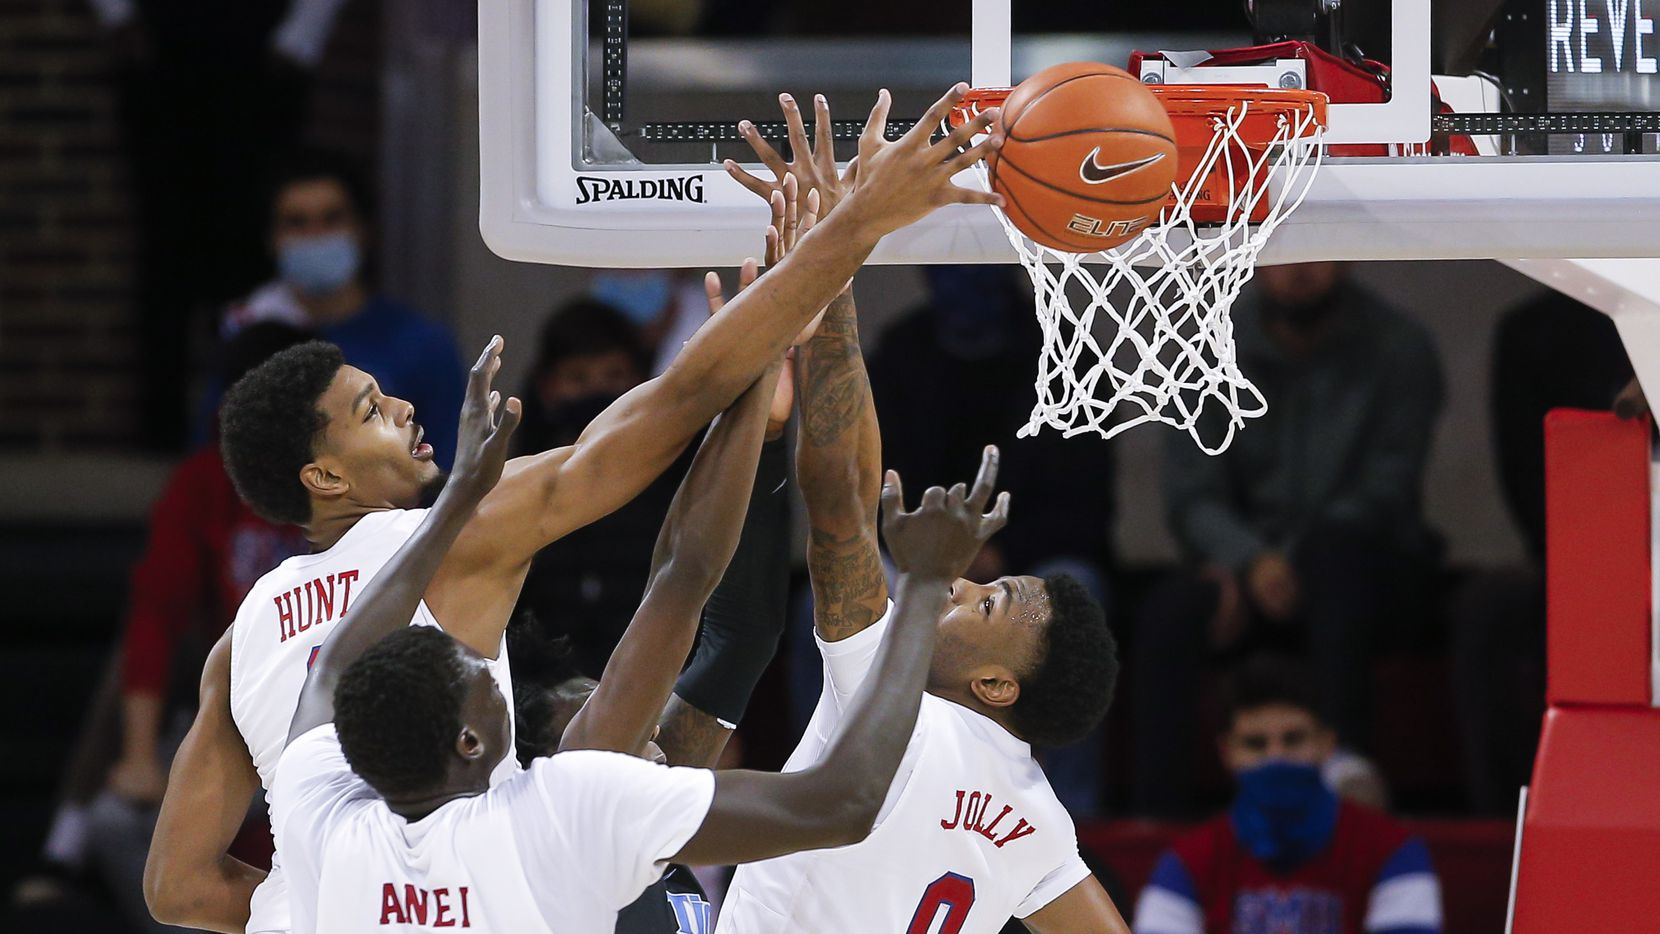 (L to R) SMU forwards Feron Hunt, Yor Anei (10) and guard Tyson Jolly (0) vie for a rebound during the second half of a college basketball game against Memphis in Dallas, Thursday, January 28, 2021. SMU won 67-65.